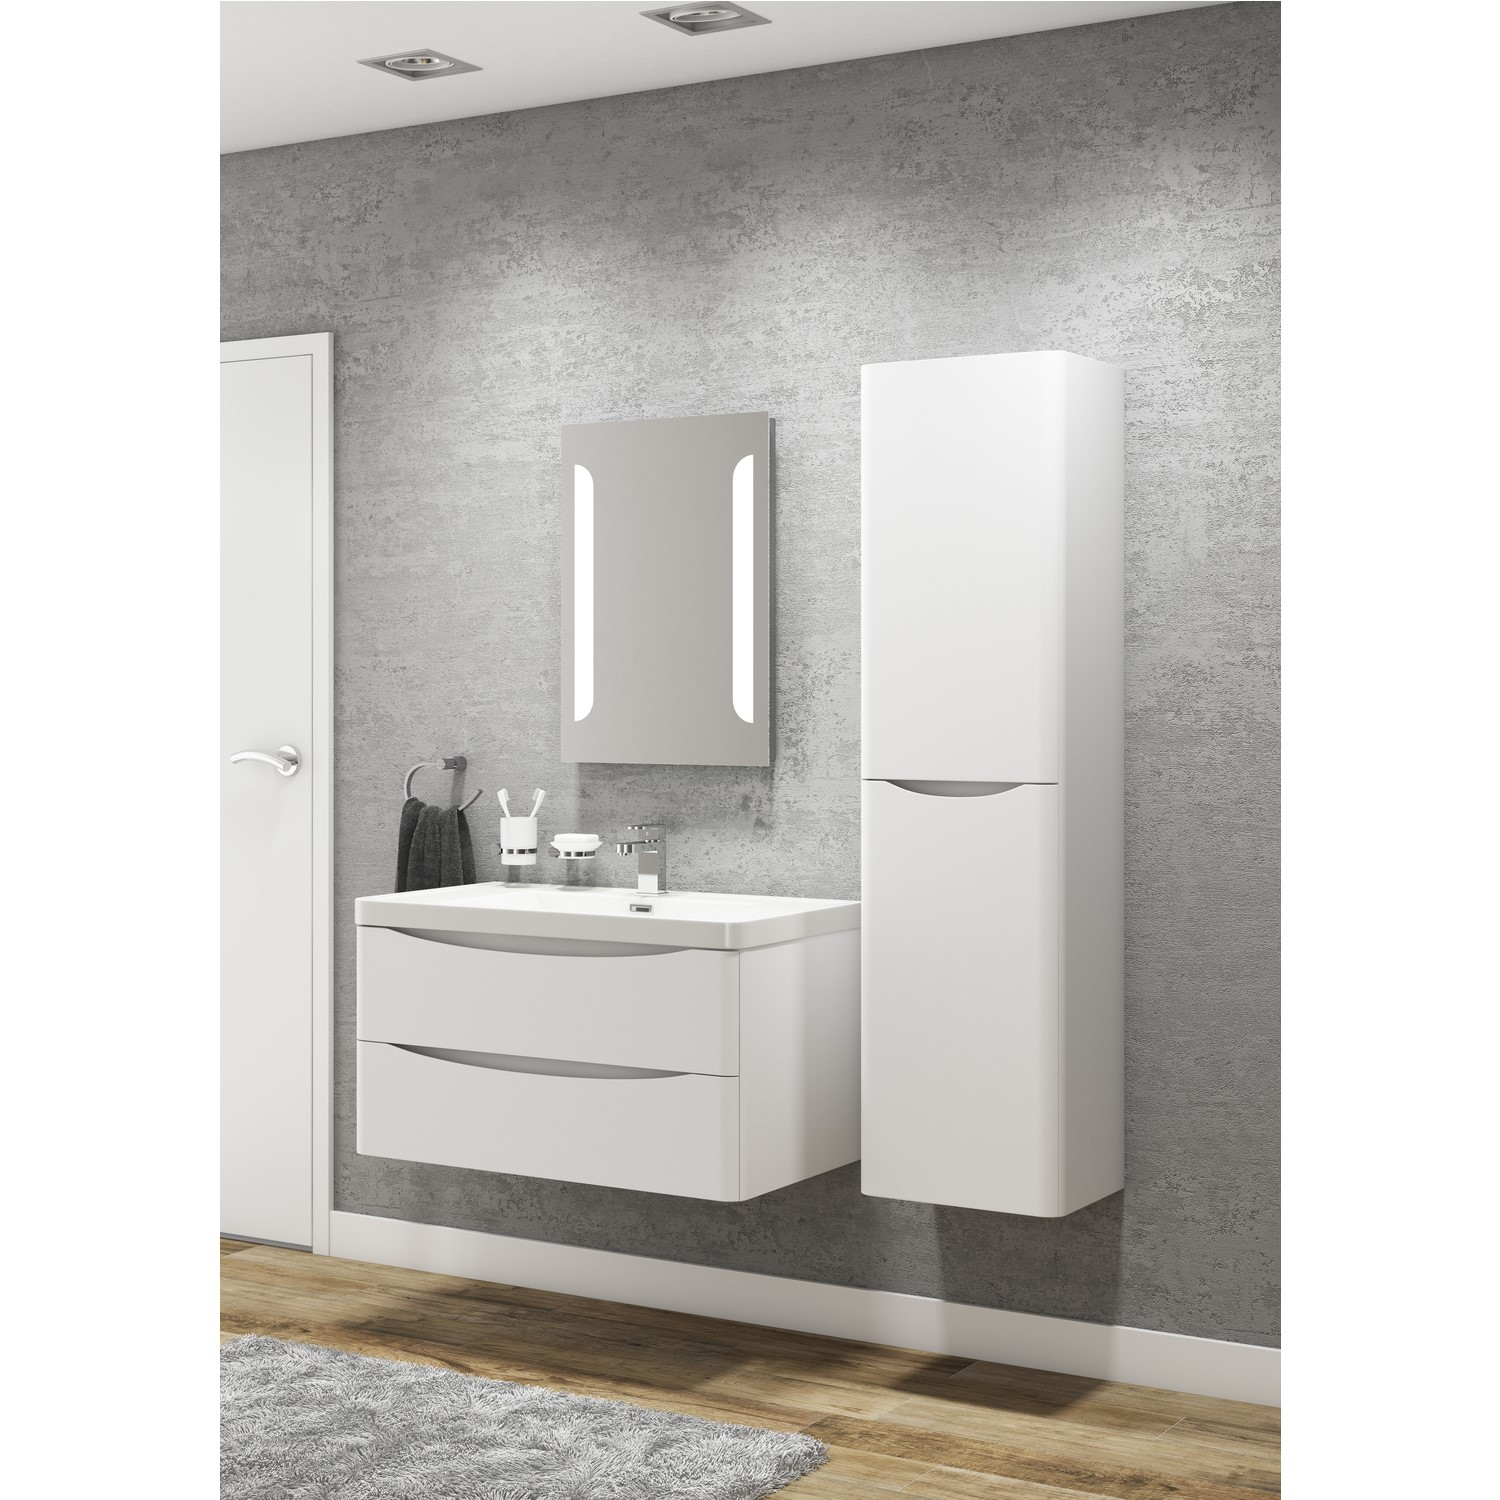 Surprising White Wall Hung Tall Bathroom Storage Cabinet 400Mm Wide Interior Design Ideas Skatsoteloinfo